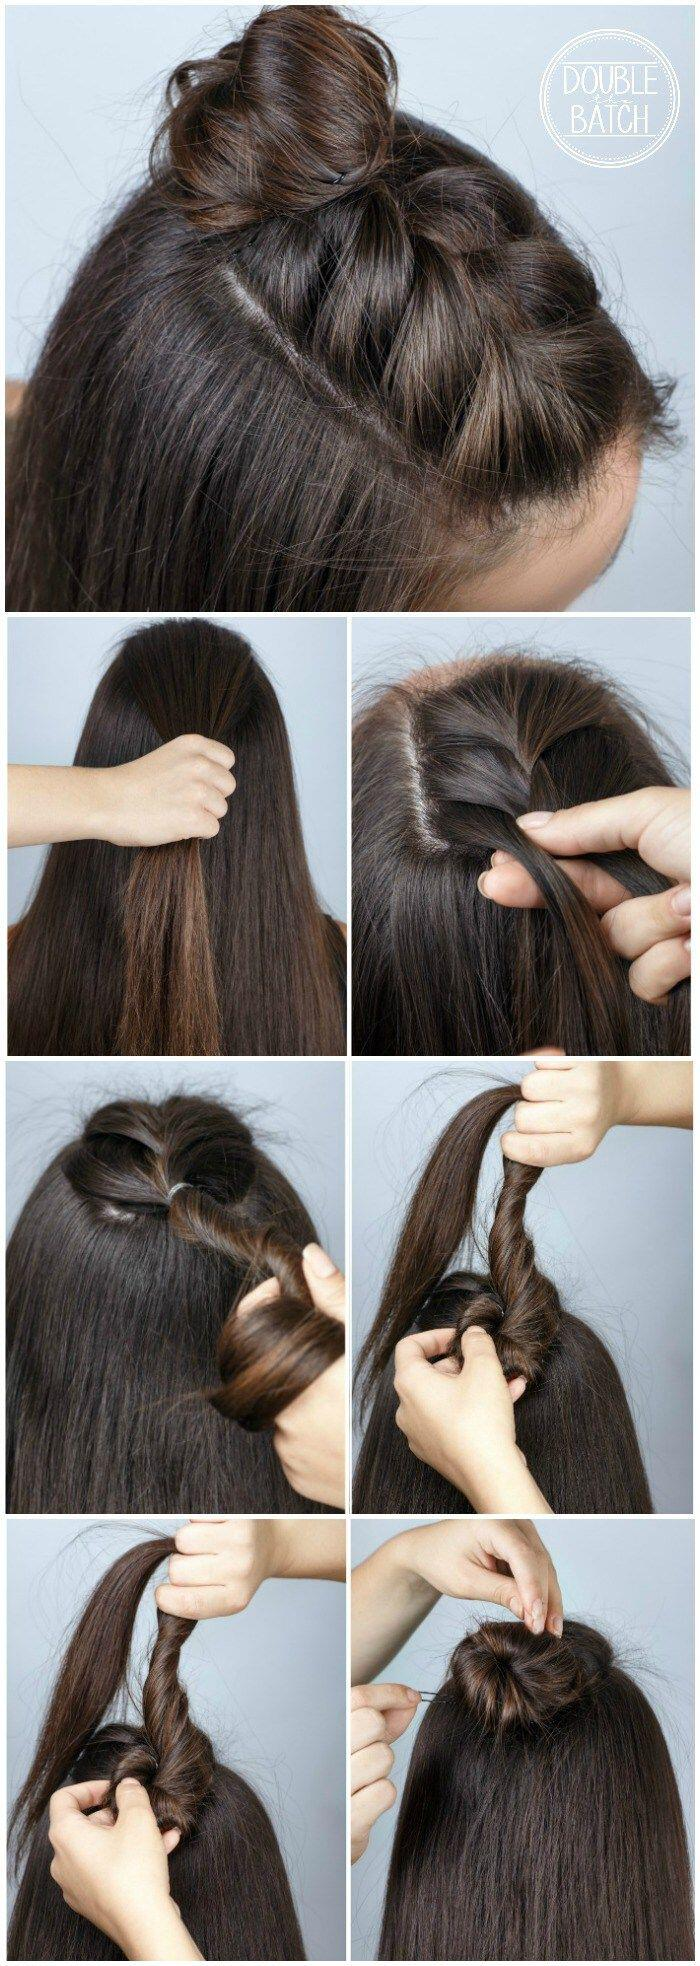 14 easy braided hairstyles and step by step tutorials - Page 7 of 15 - stylishwomenoutfits.com